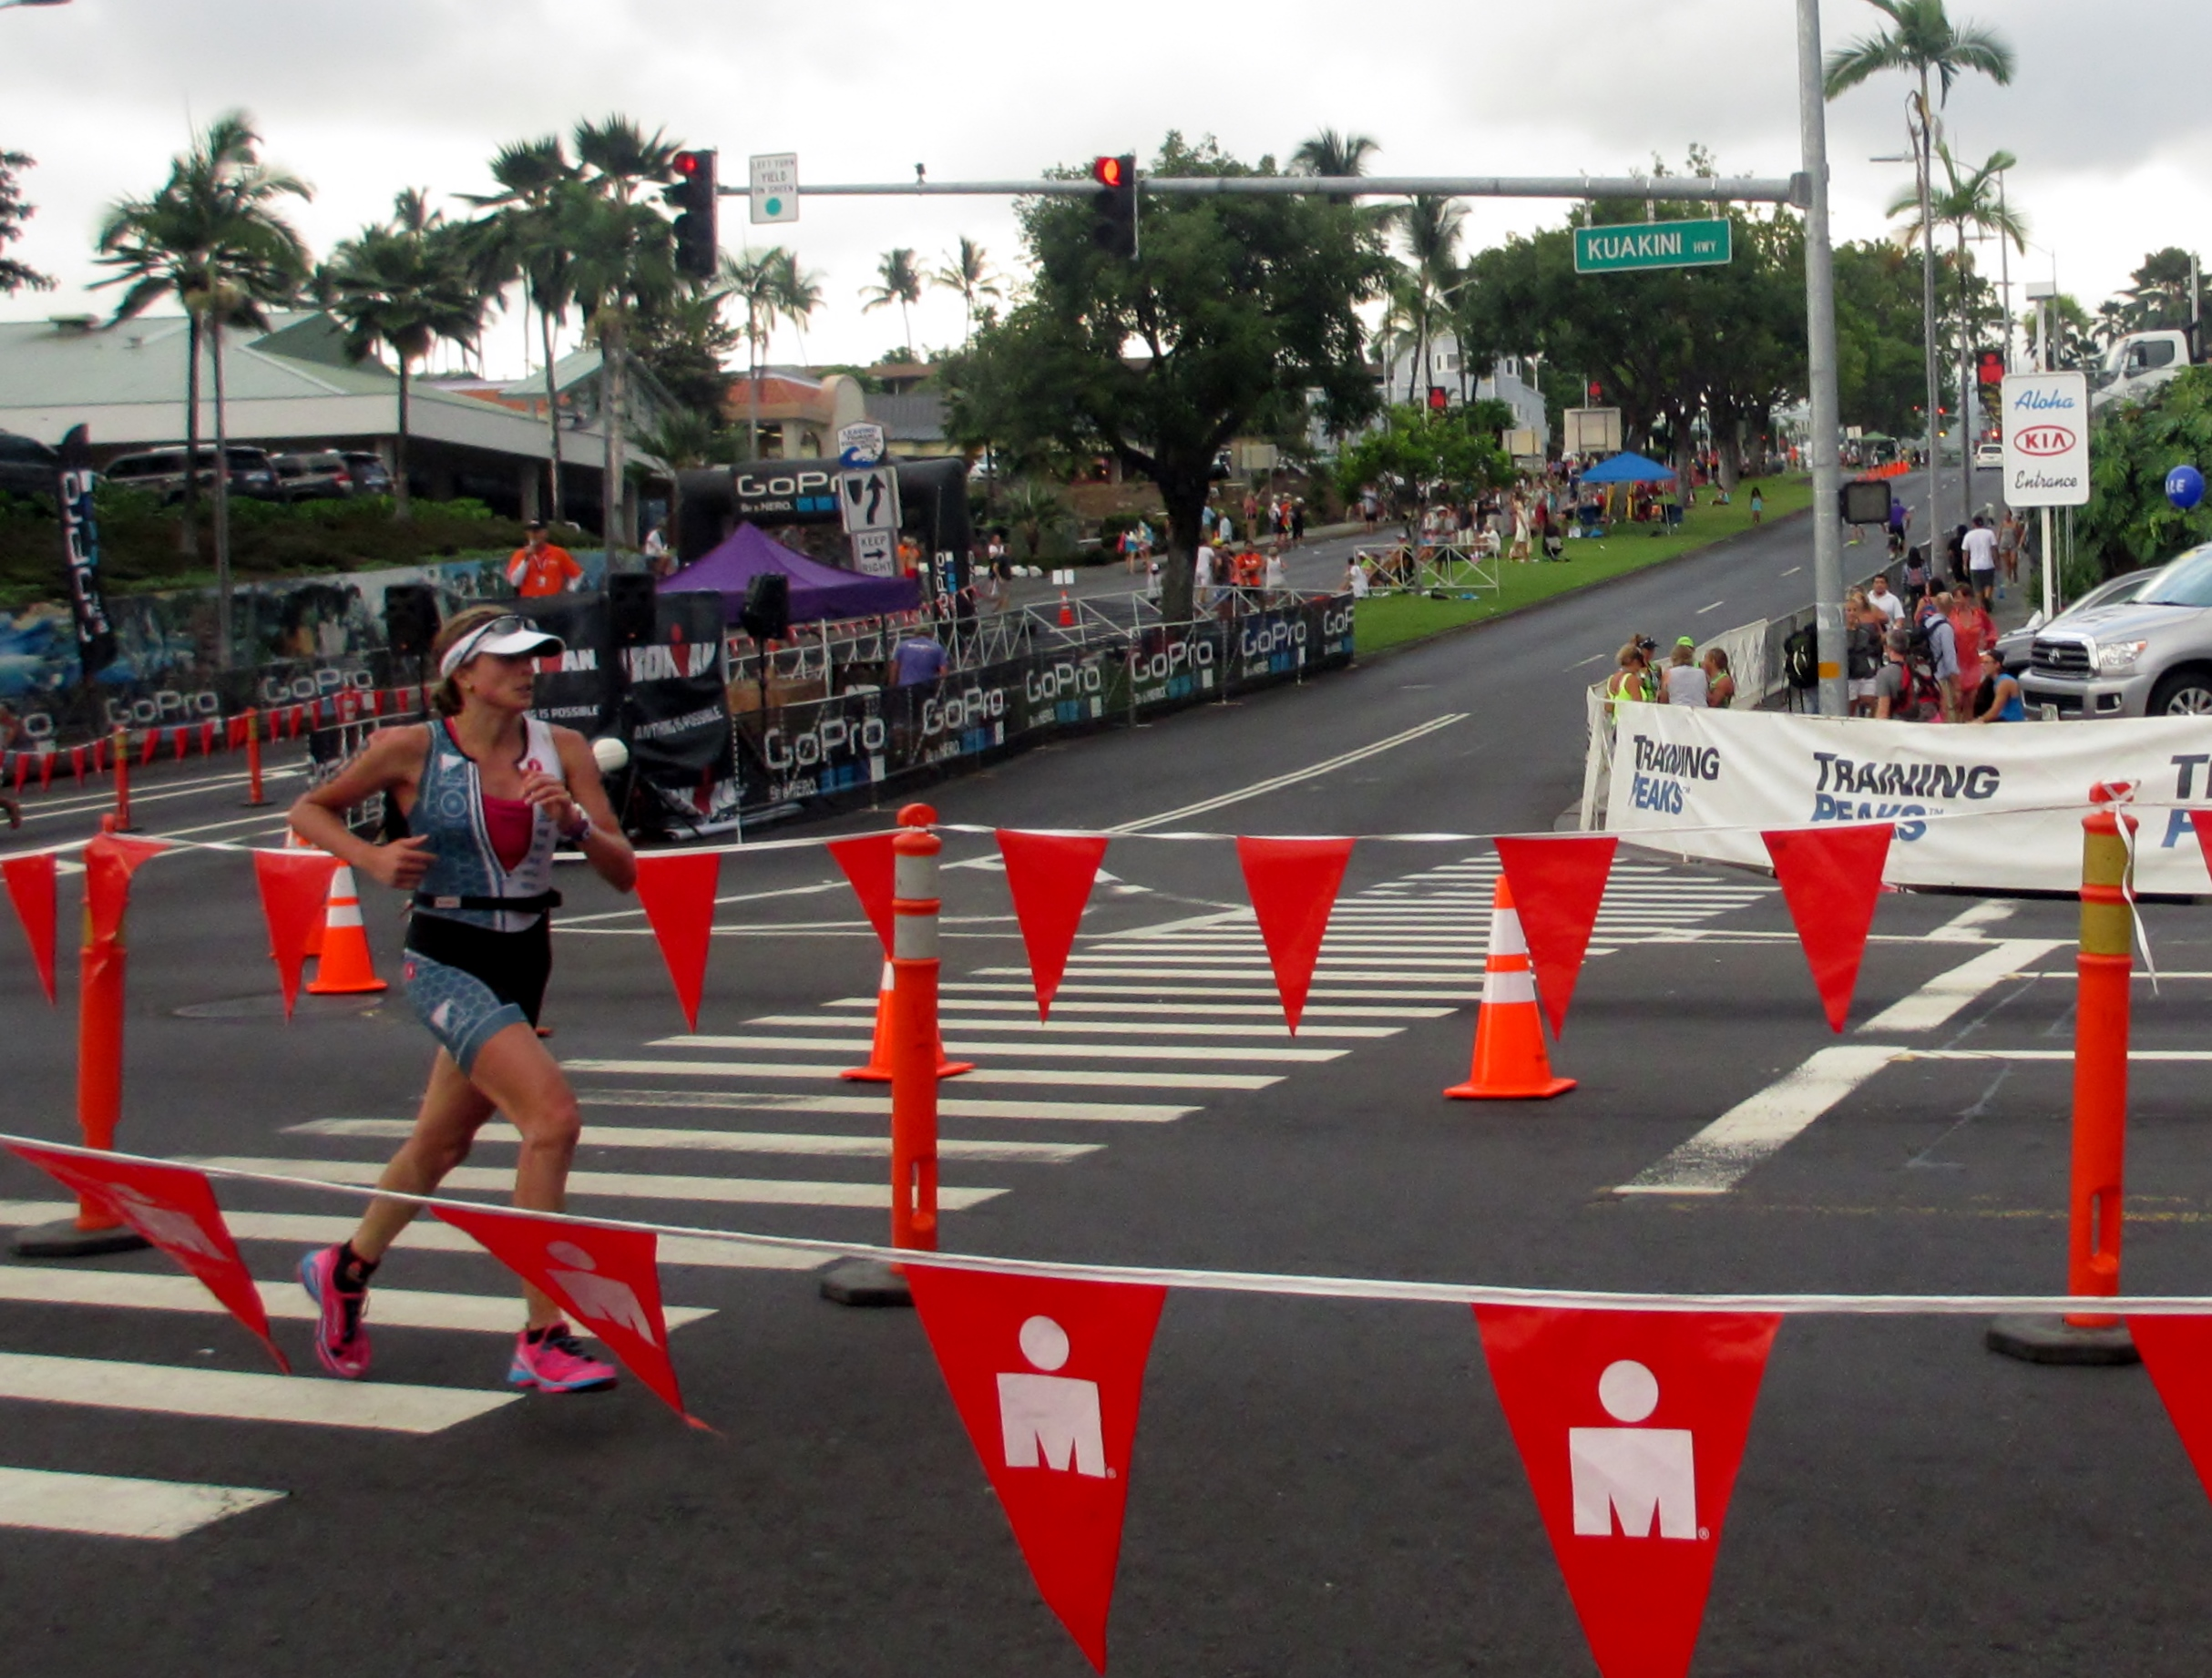 Crushing the final mile.